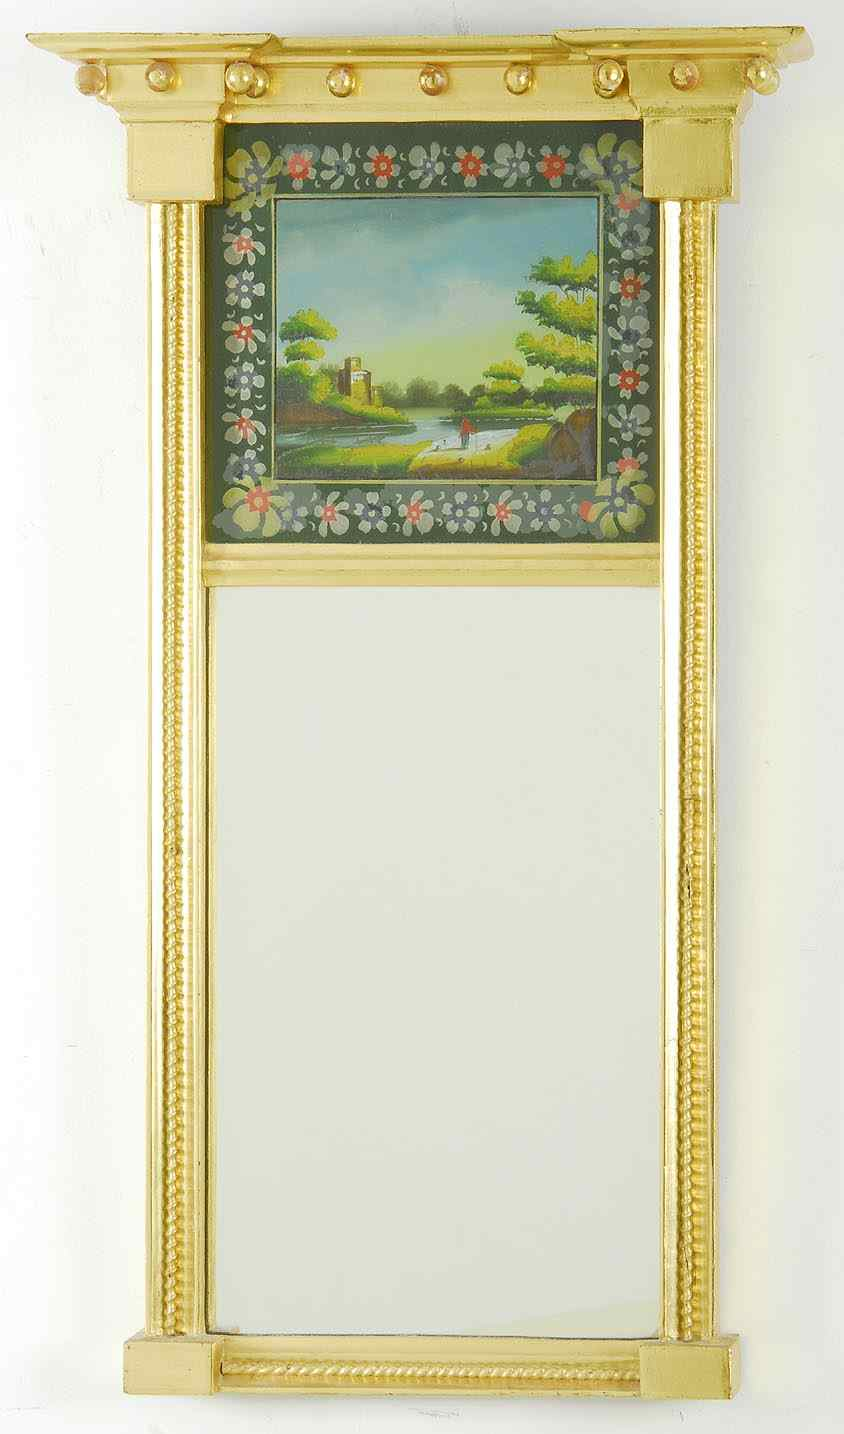 ANTIQUE SHERATON TABERNACLE MIRROR19th CenturyWith